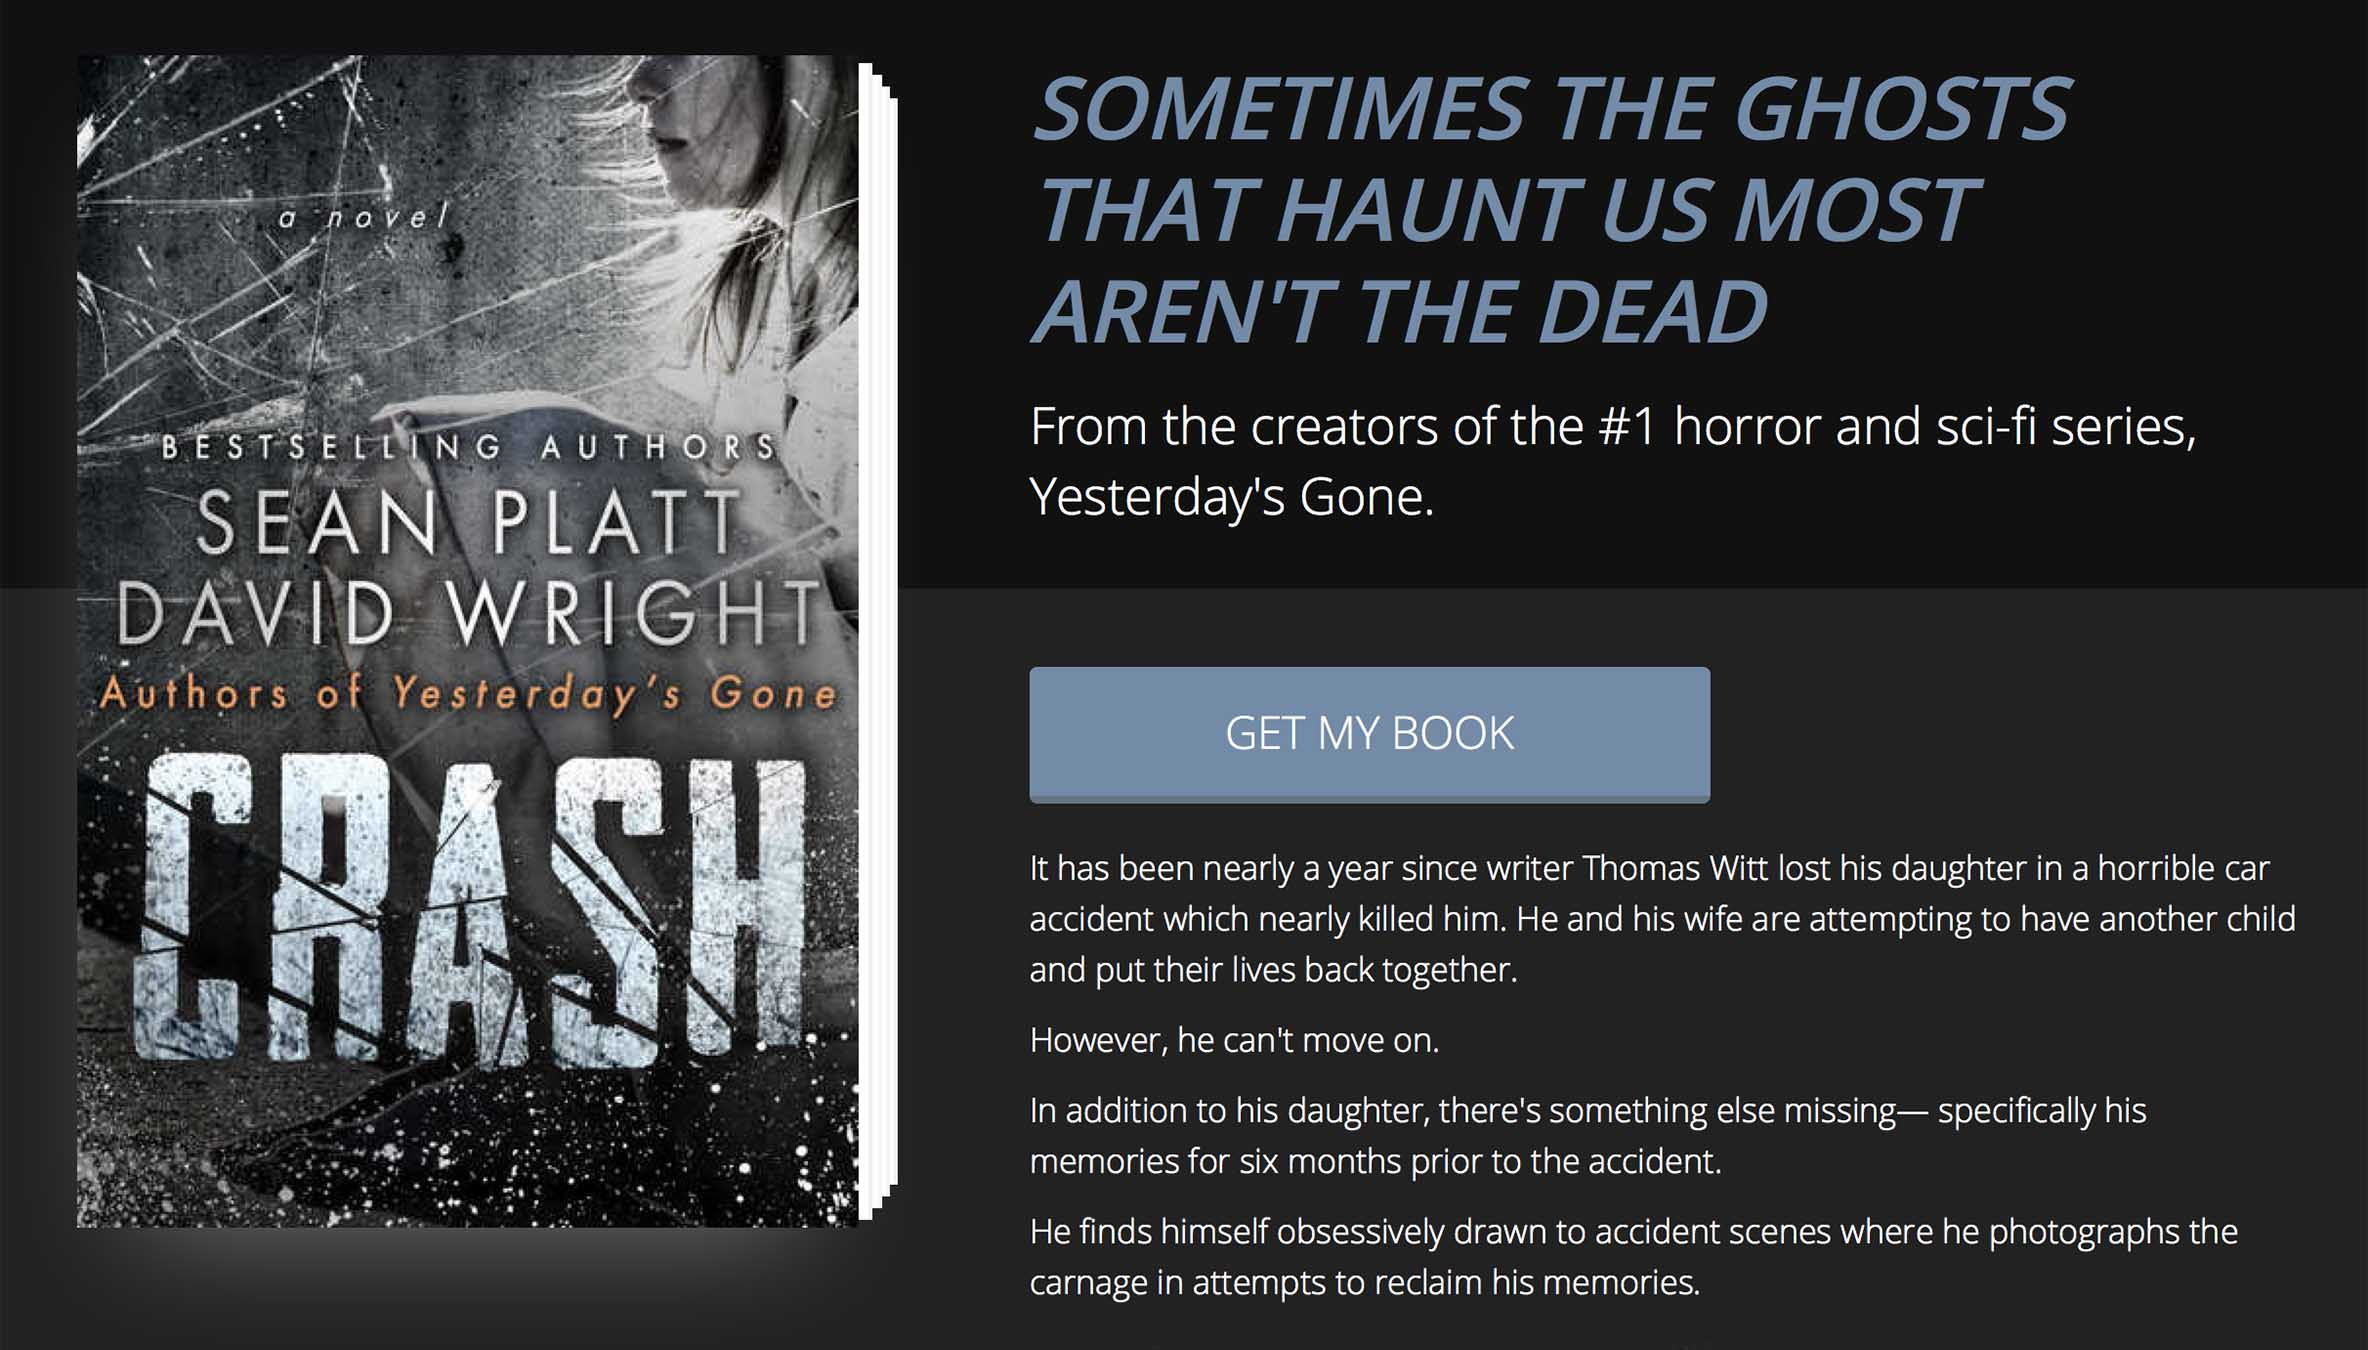 Custom landing page design by BookFunnel for Crash by Sean Platt and David Wright